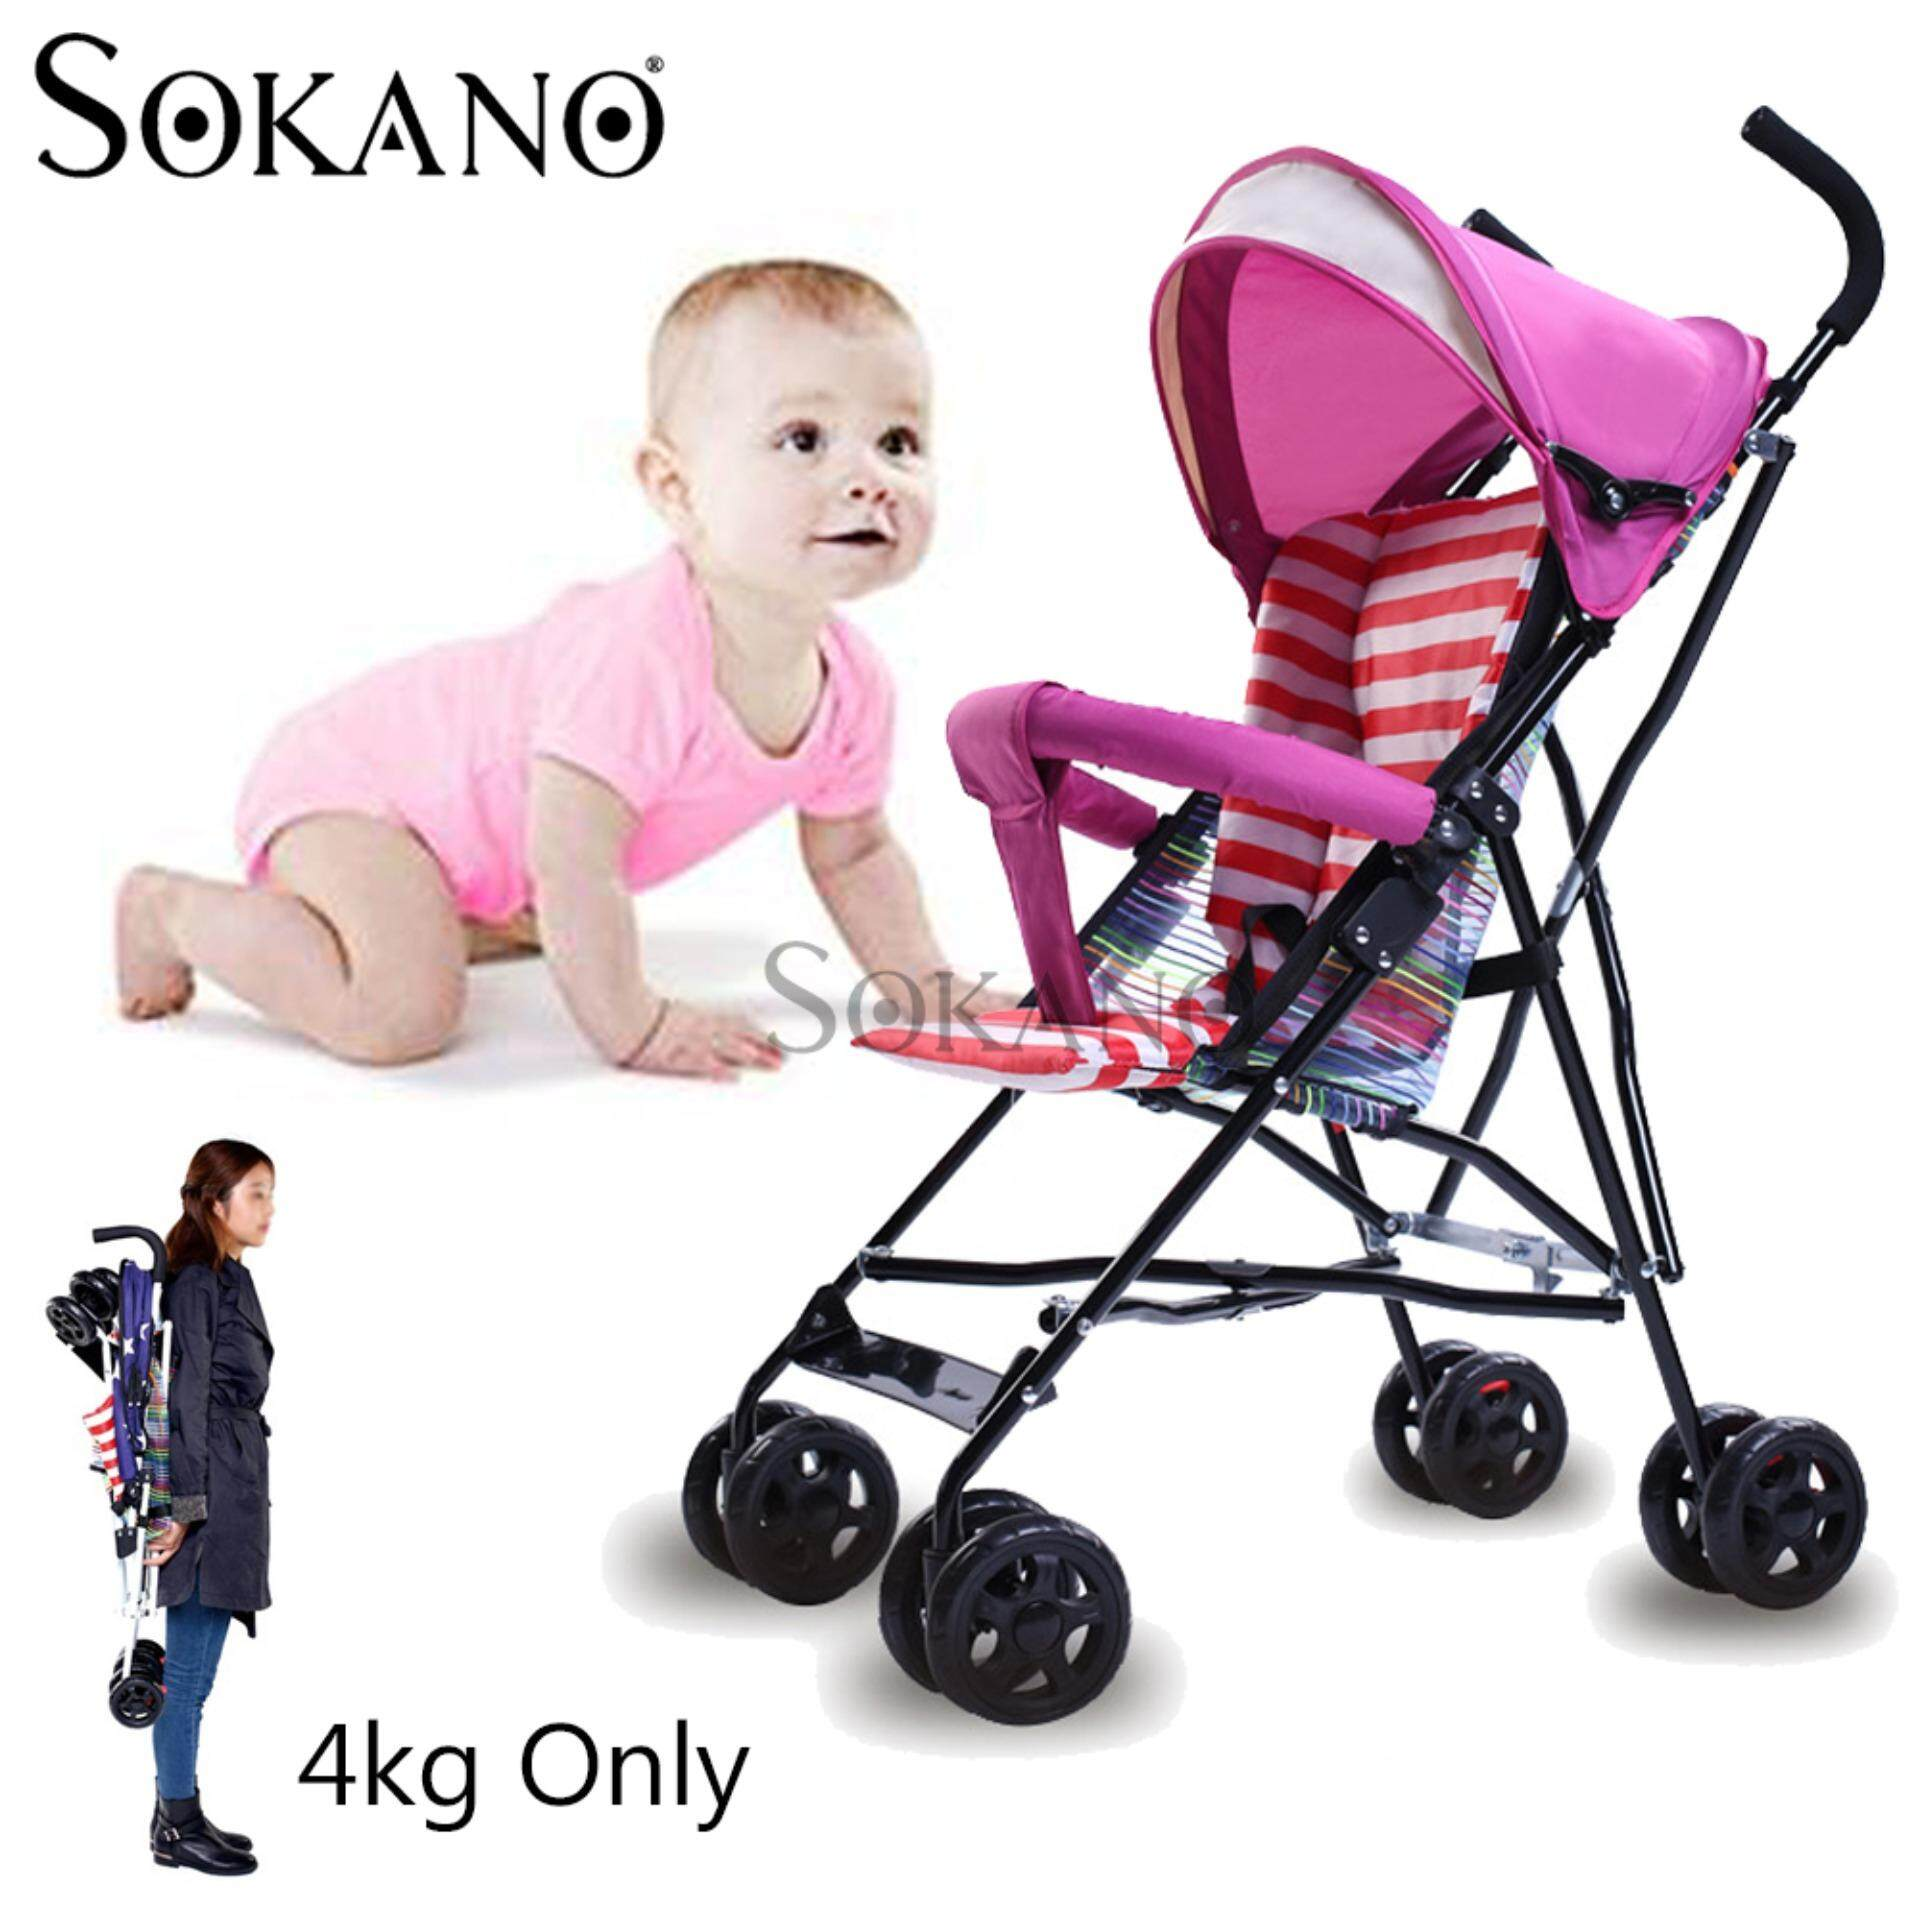 SOKANO Y501 Ultralight Foldable Umbrella Size Stroller for Travel and Outdoor Use - Red